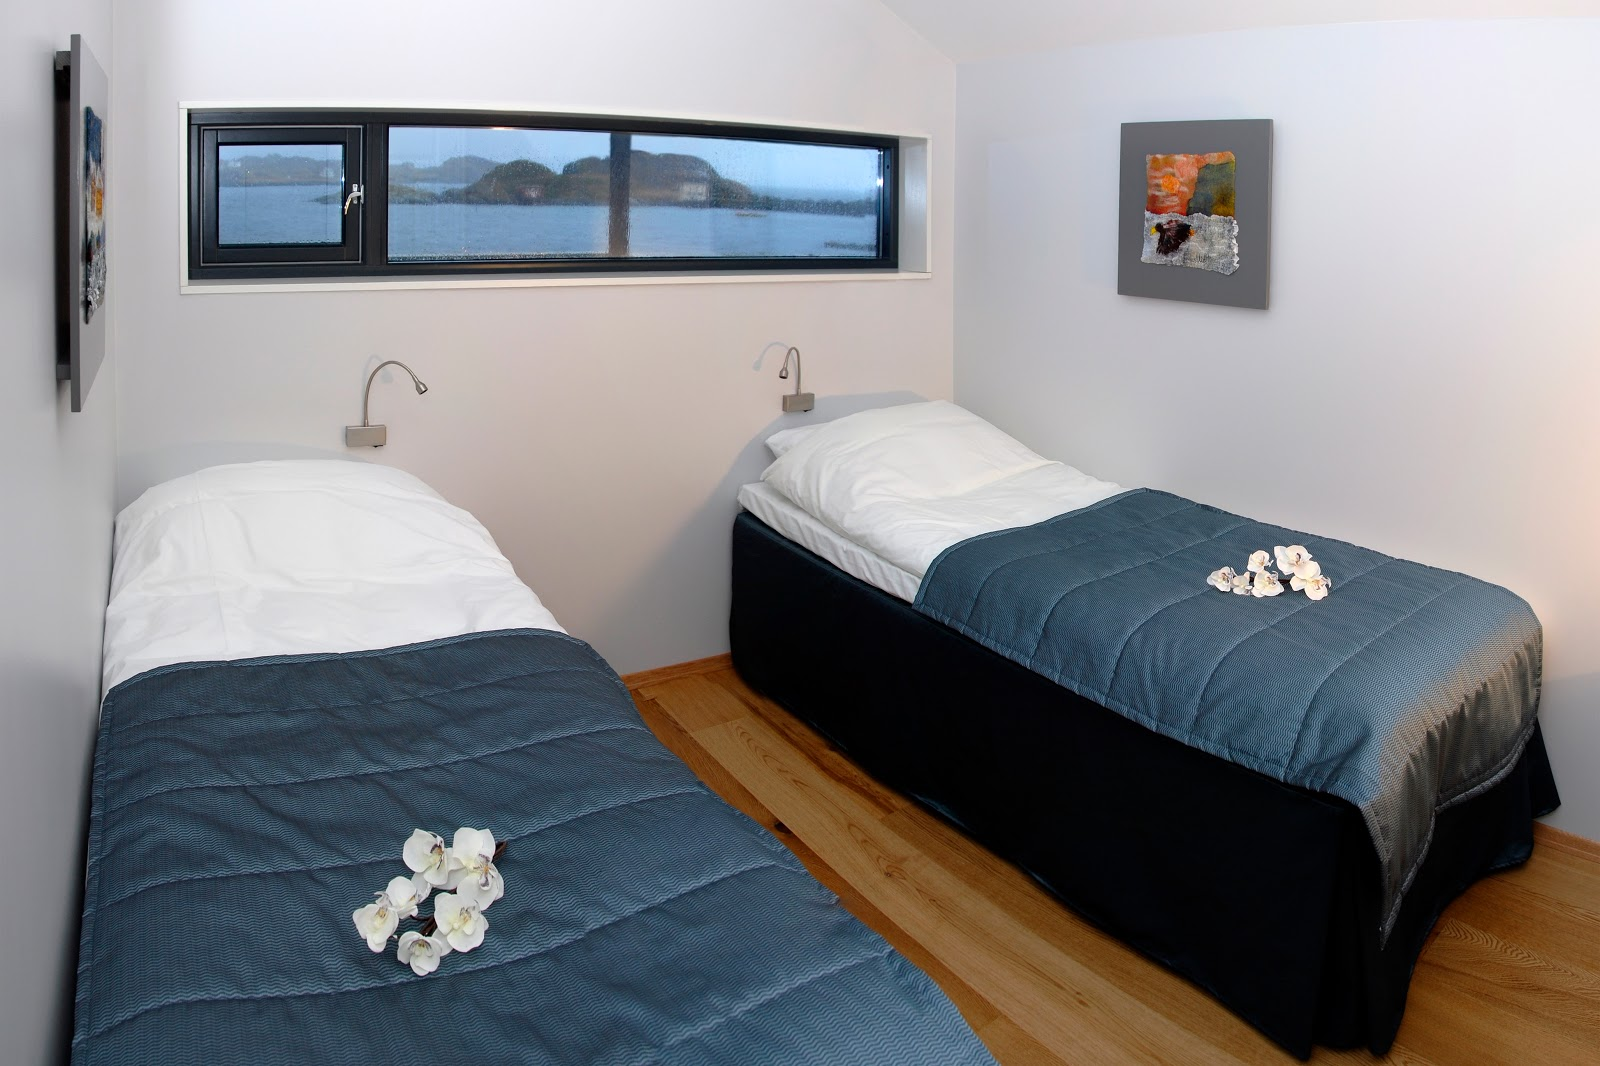 Two single beds are located in the first of two of bedrooms (my recommendation) in each of the villas. Notice the spectacular view outside the windows. This photo only: © Hamn I Senja. Unauthorized use is prohibited.